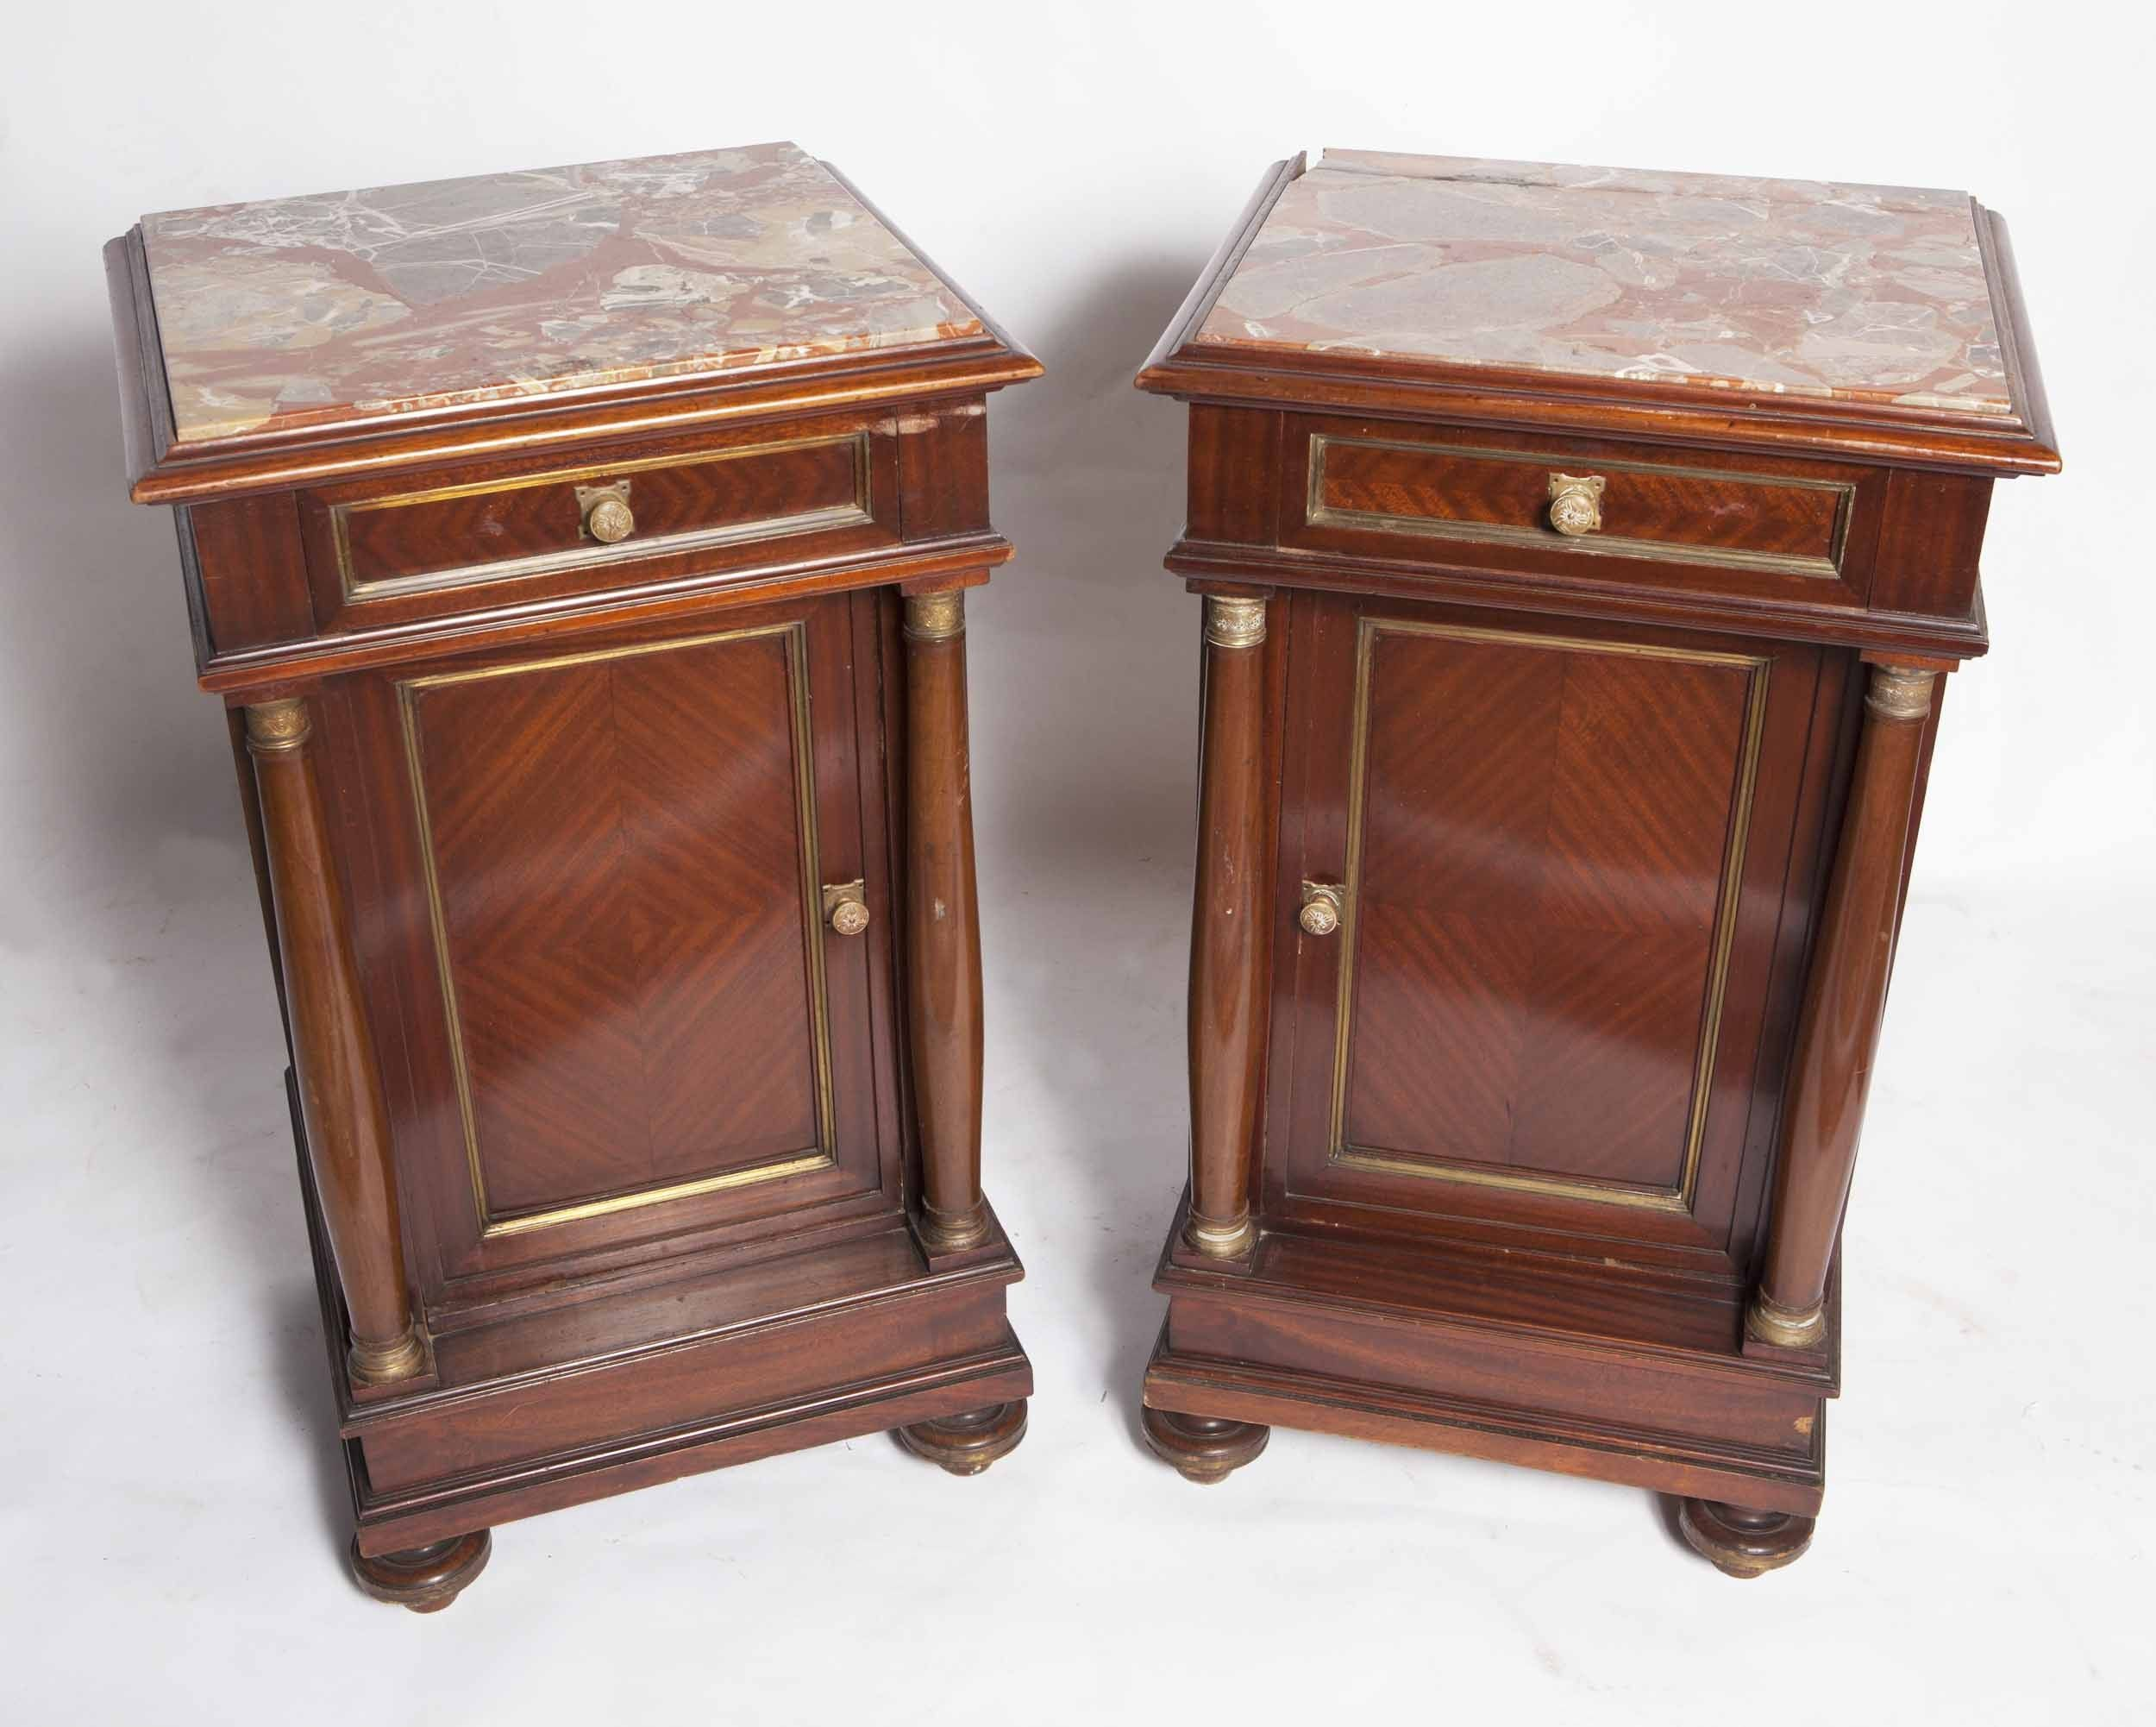 Antique Bedside Tables Unusual Century French Second Empire Antique Bedside Table